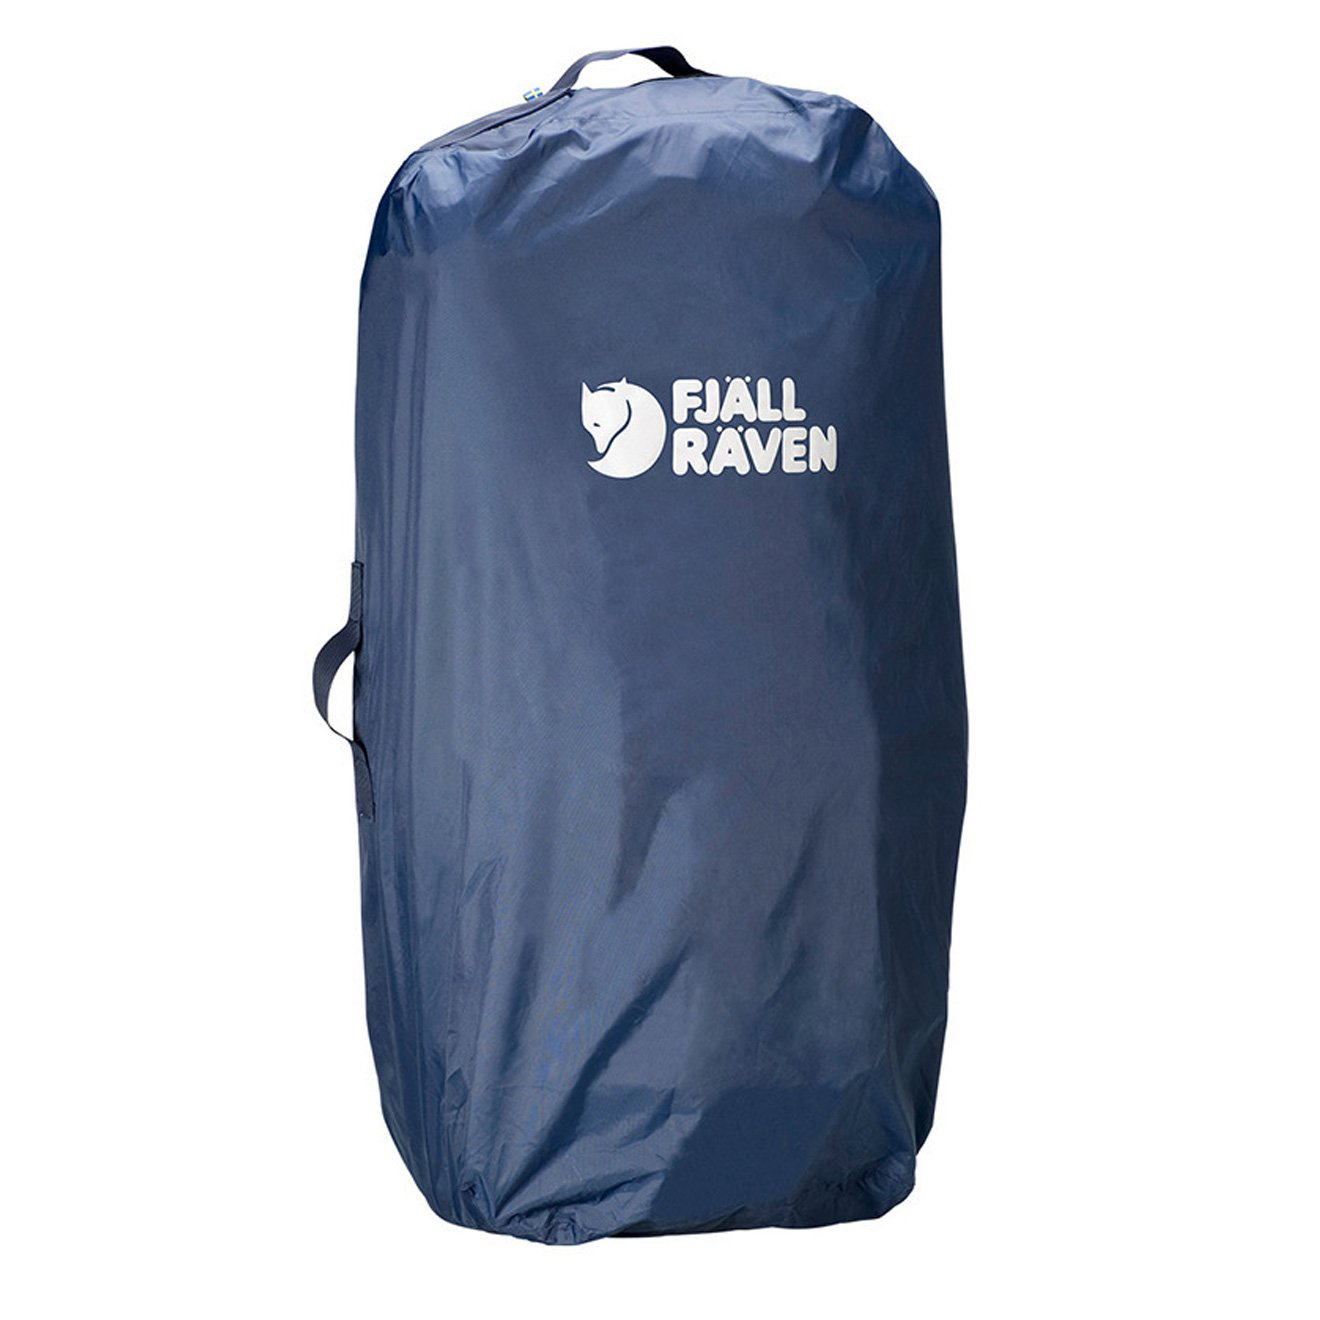 Fjallraven Flight Bag 70-85L Navy